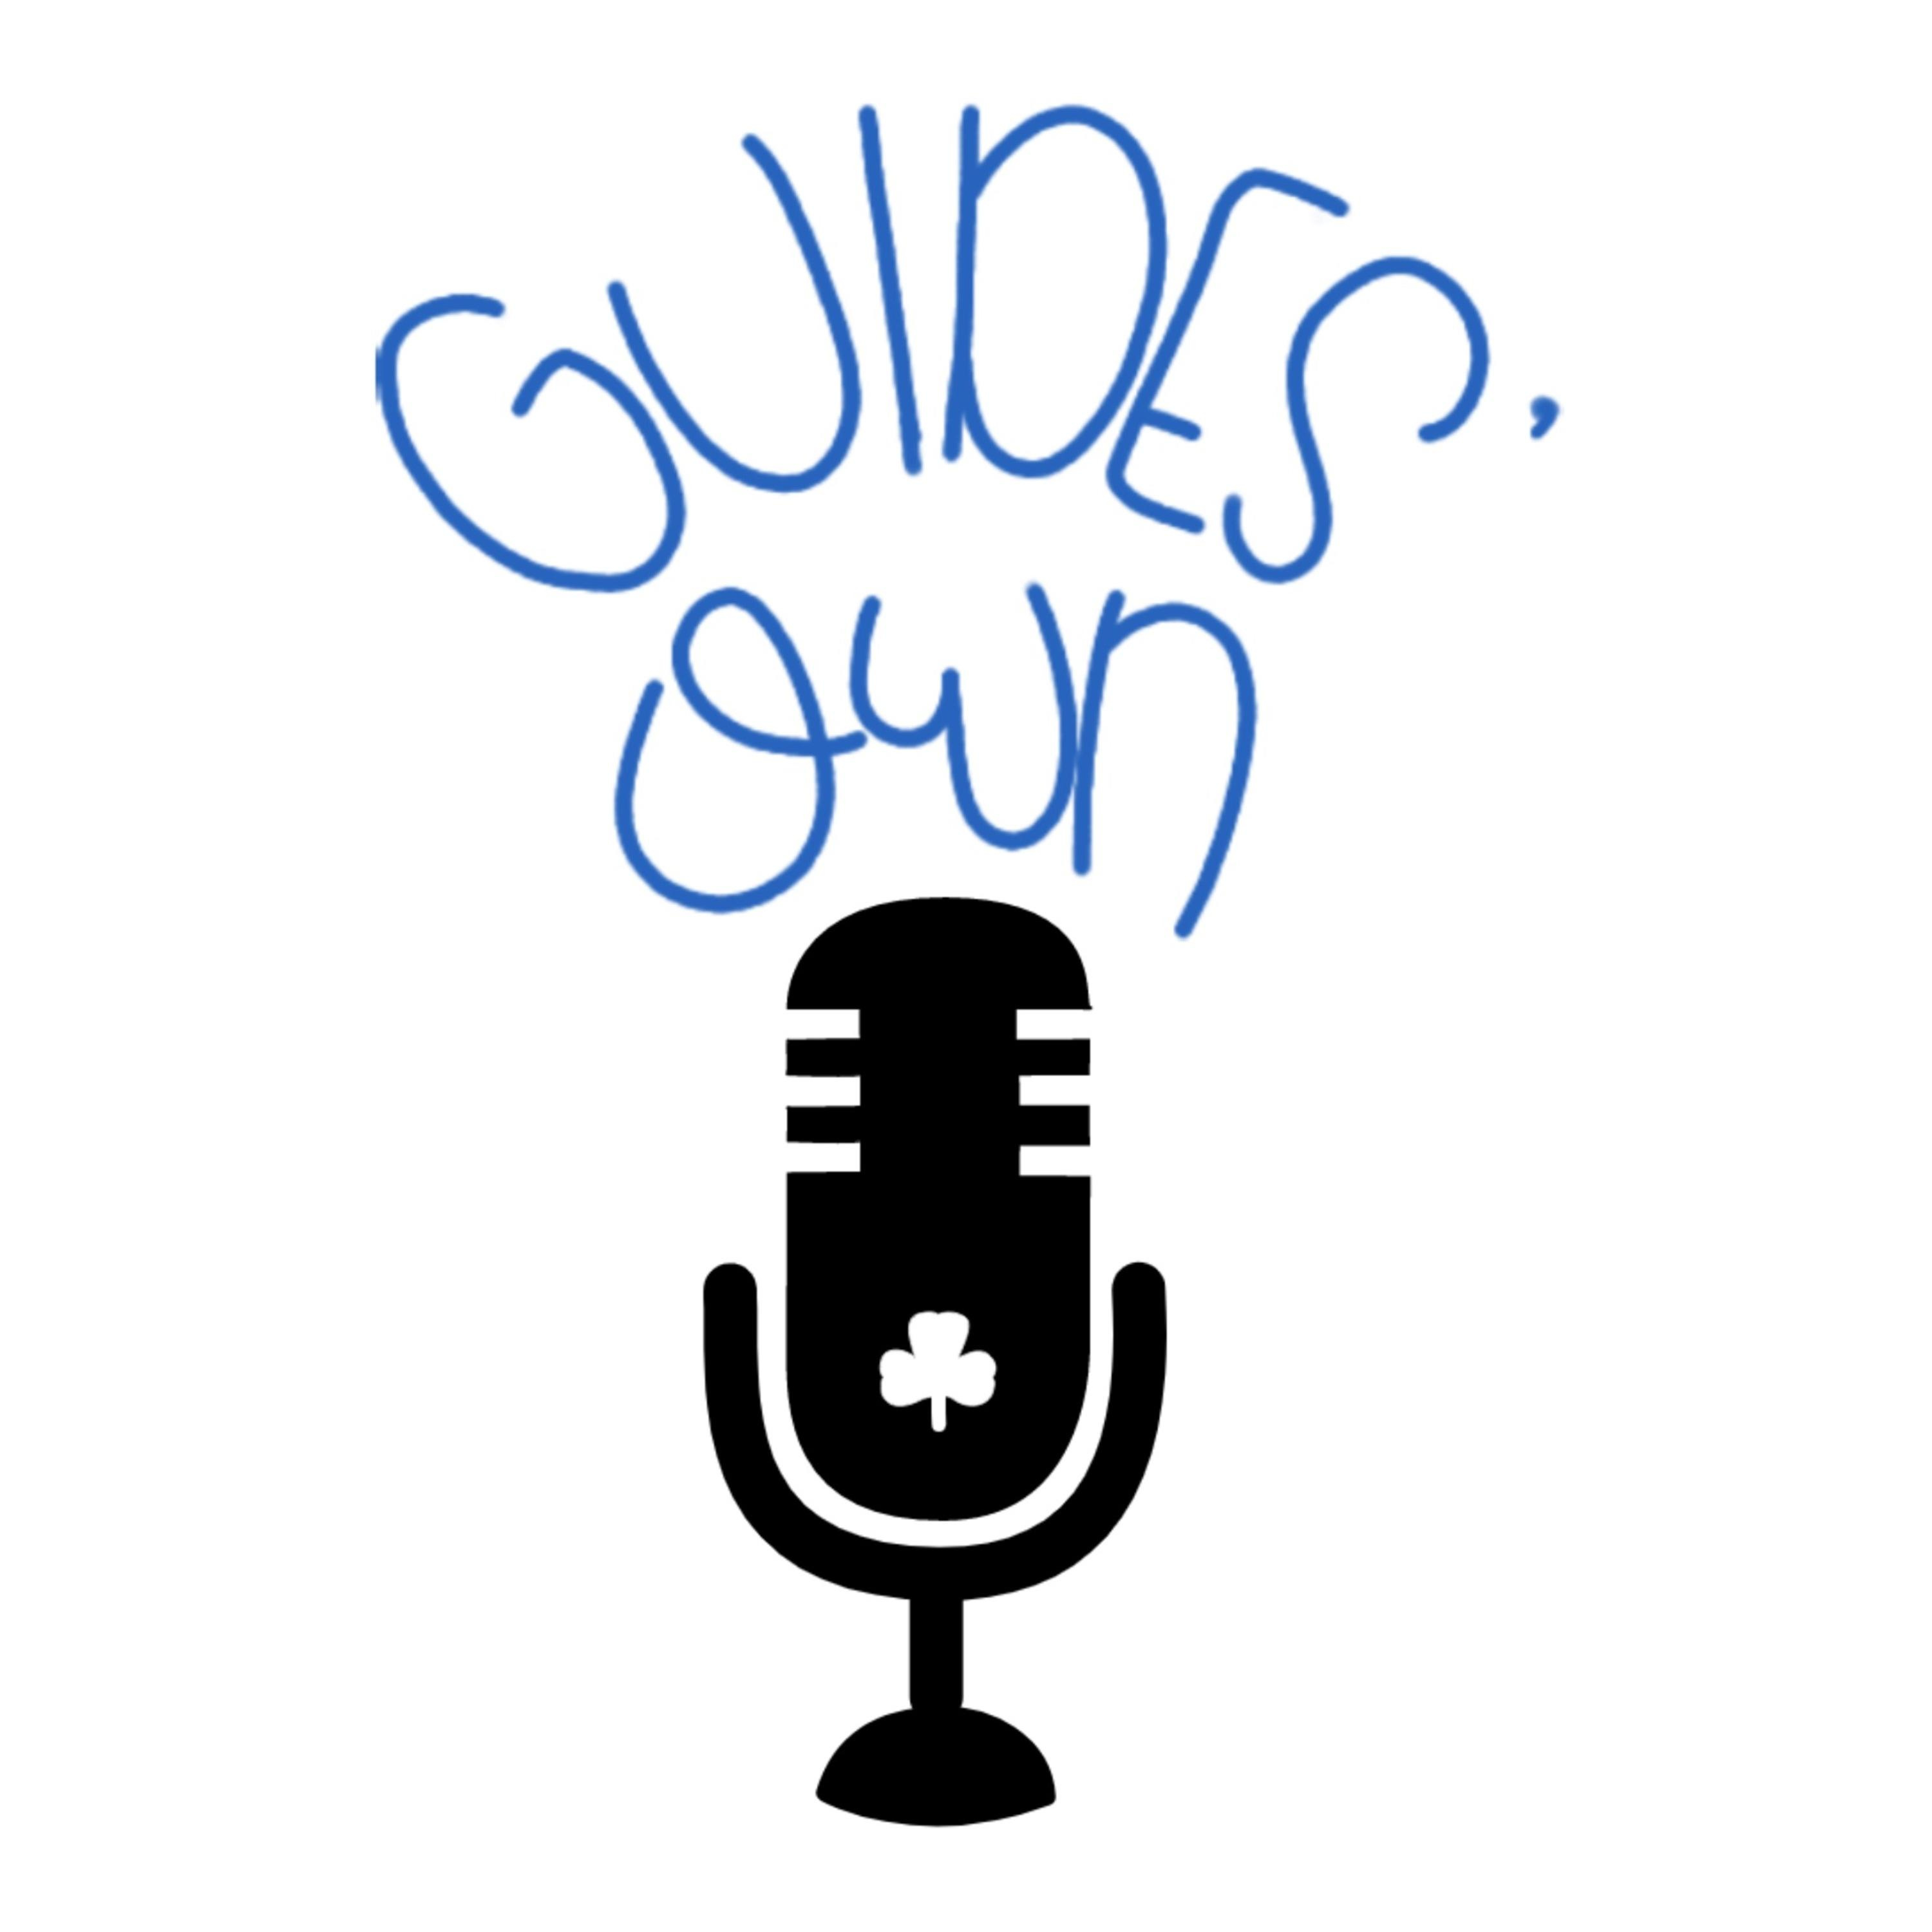 Guides' Own